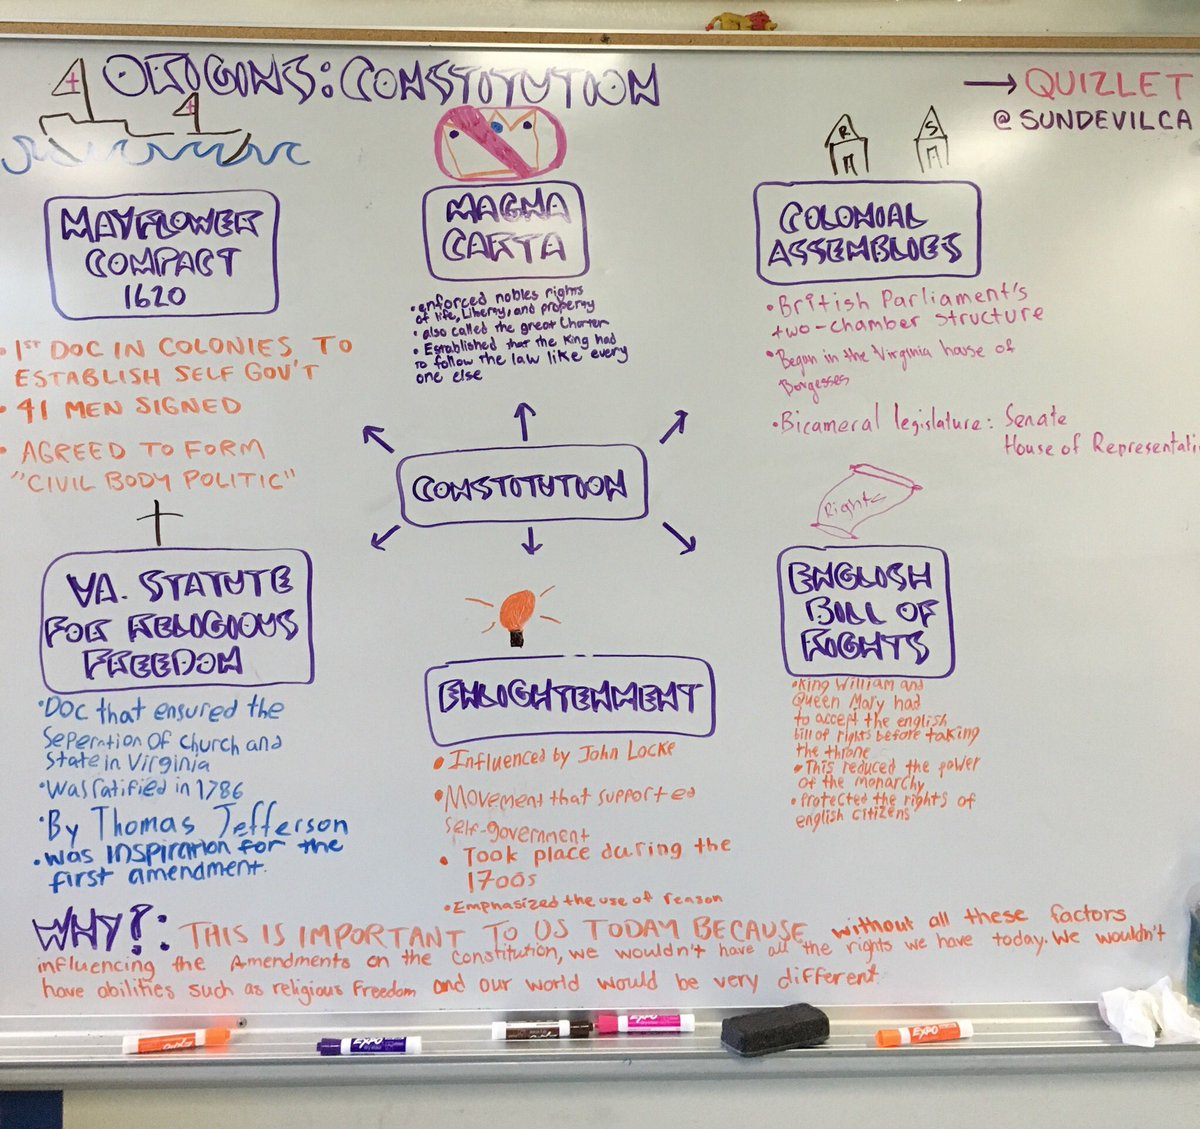 What was the significance of the mayflower compact quizlet